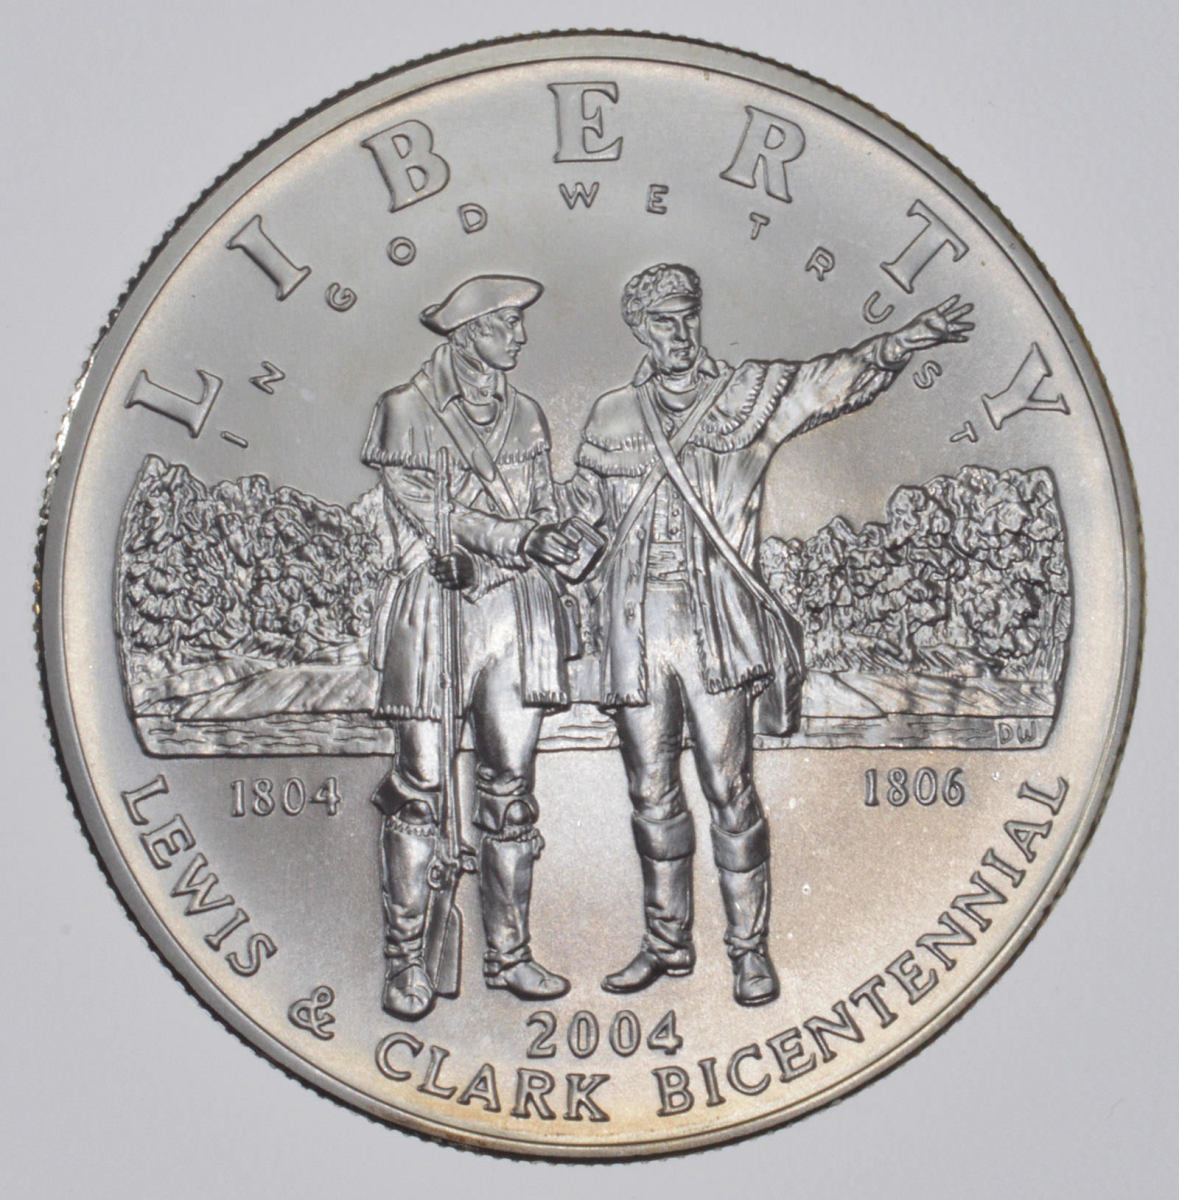 2004 United States Lewis and Clark Bicentennial silver dollar commemorative coin.